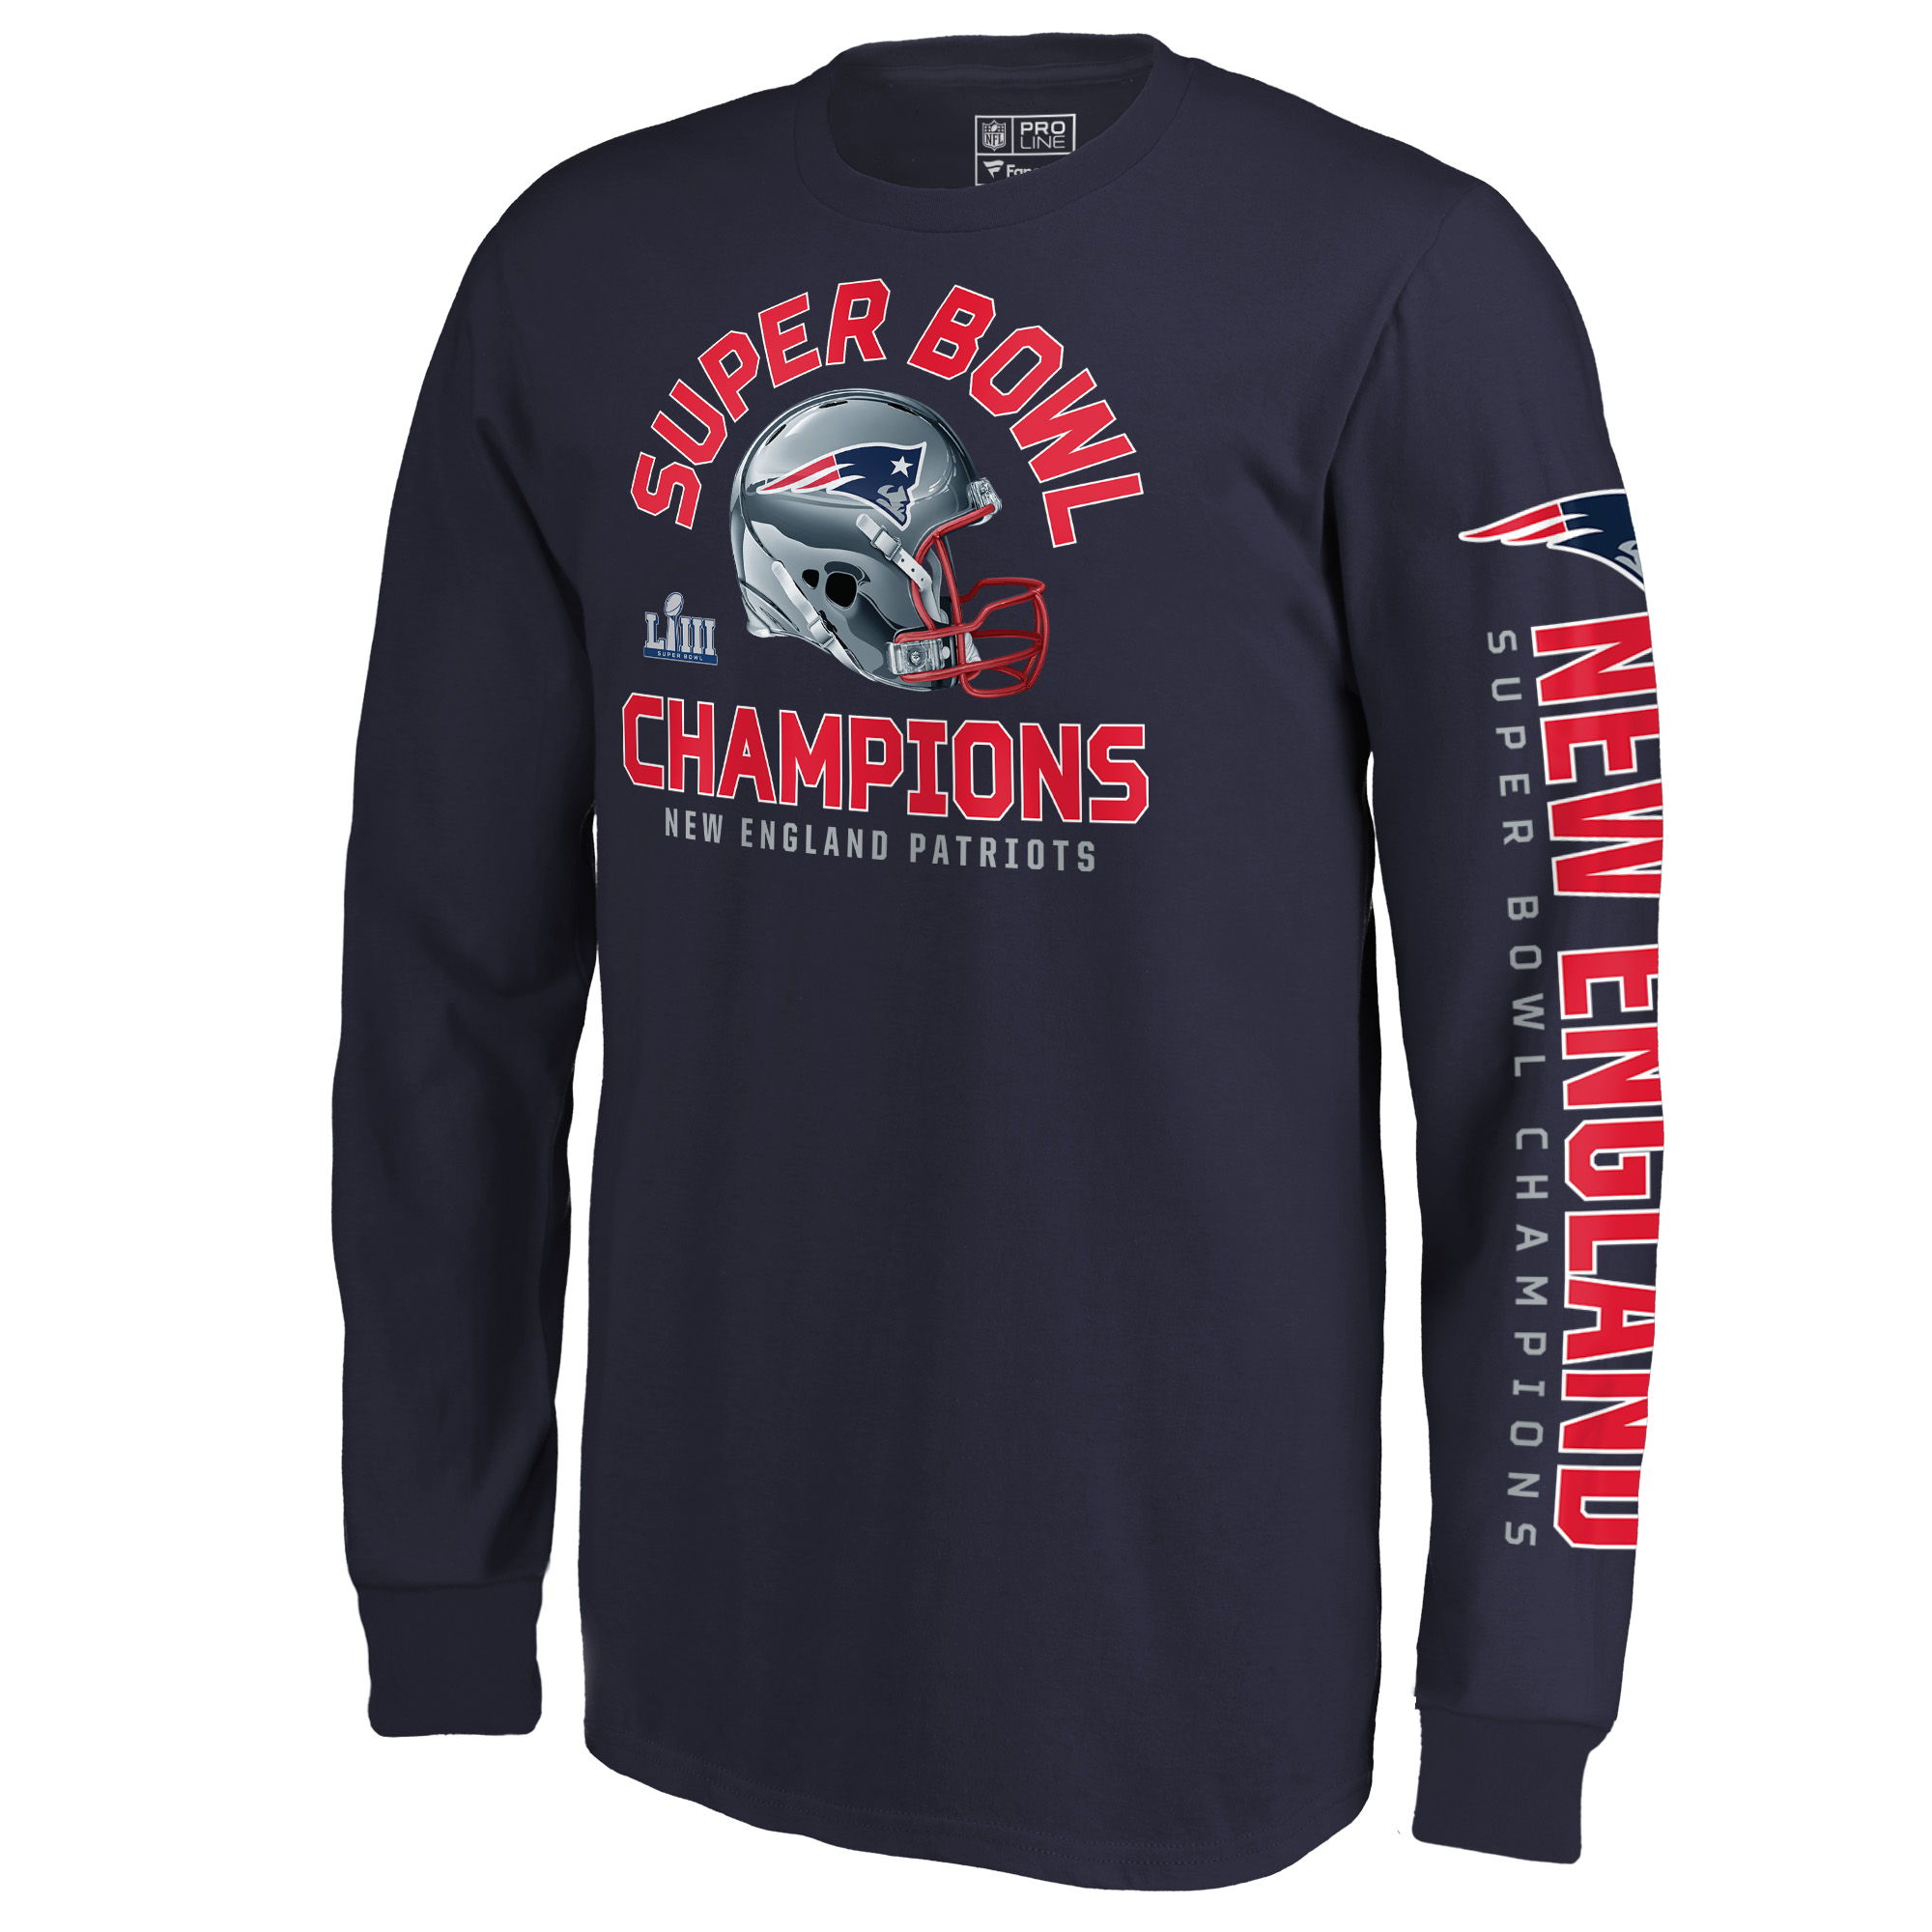 New England Patriots NFL Pro Line by Fanatics Branded Youth Super Bowl LIII  Champions Two-Minute Drill Long Sleeve T-Shirt - Navy - Walmart.com abba1b585